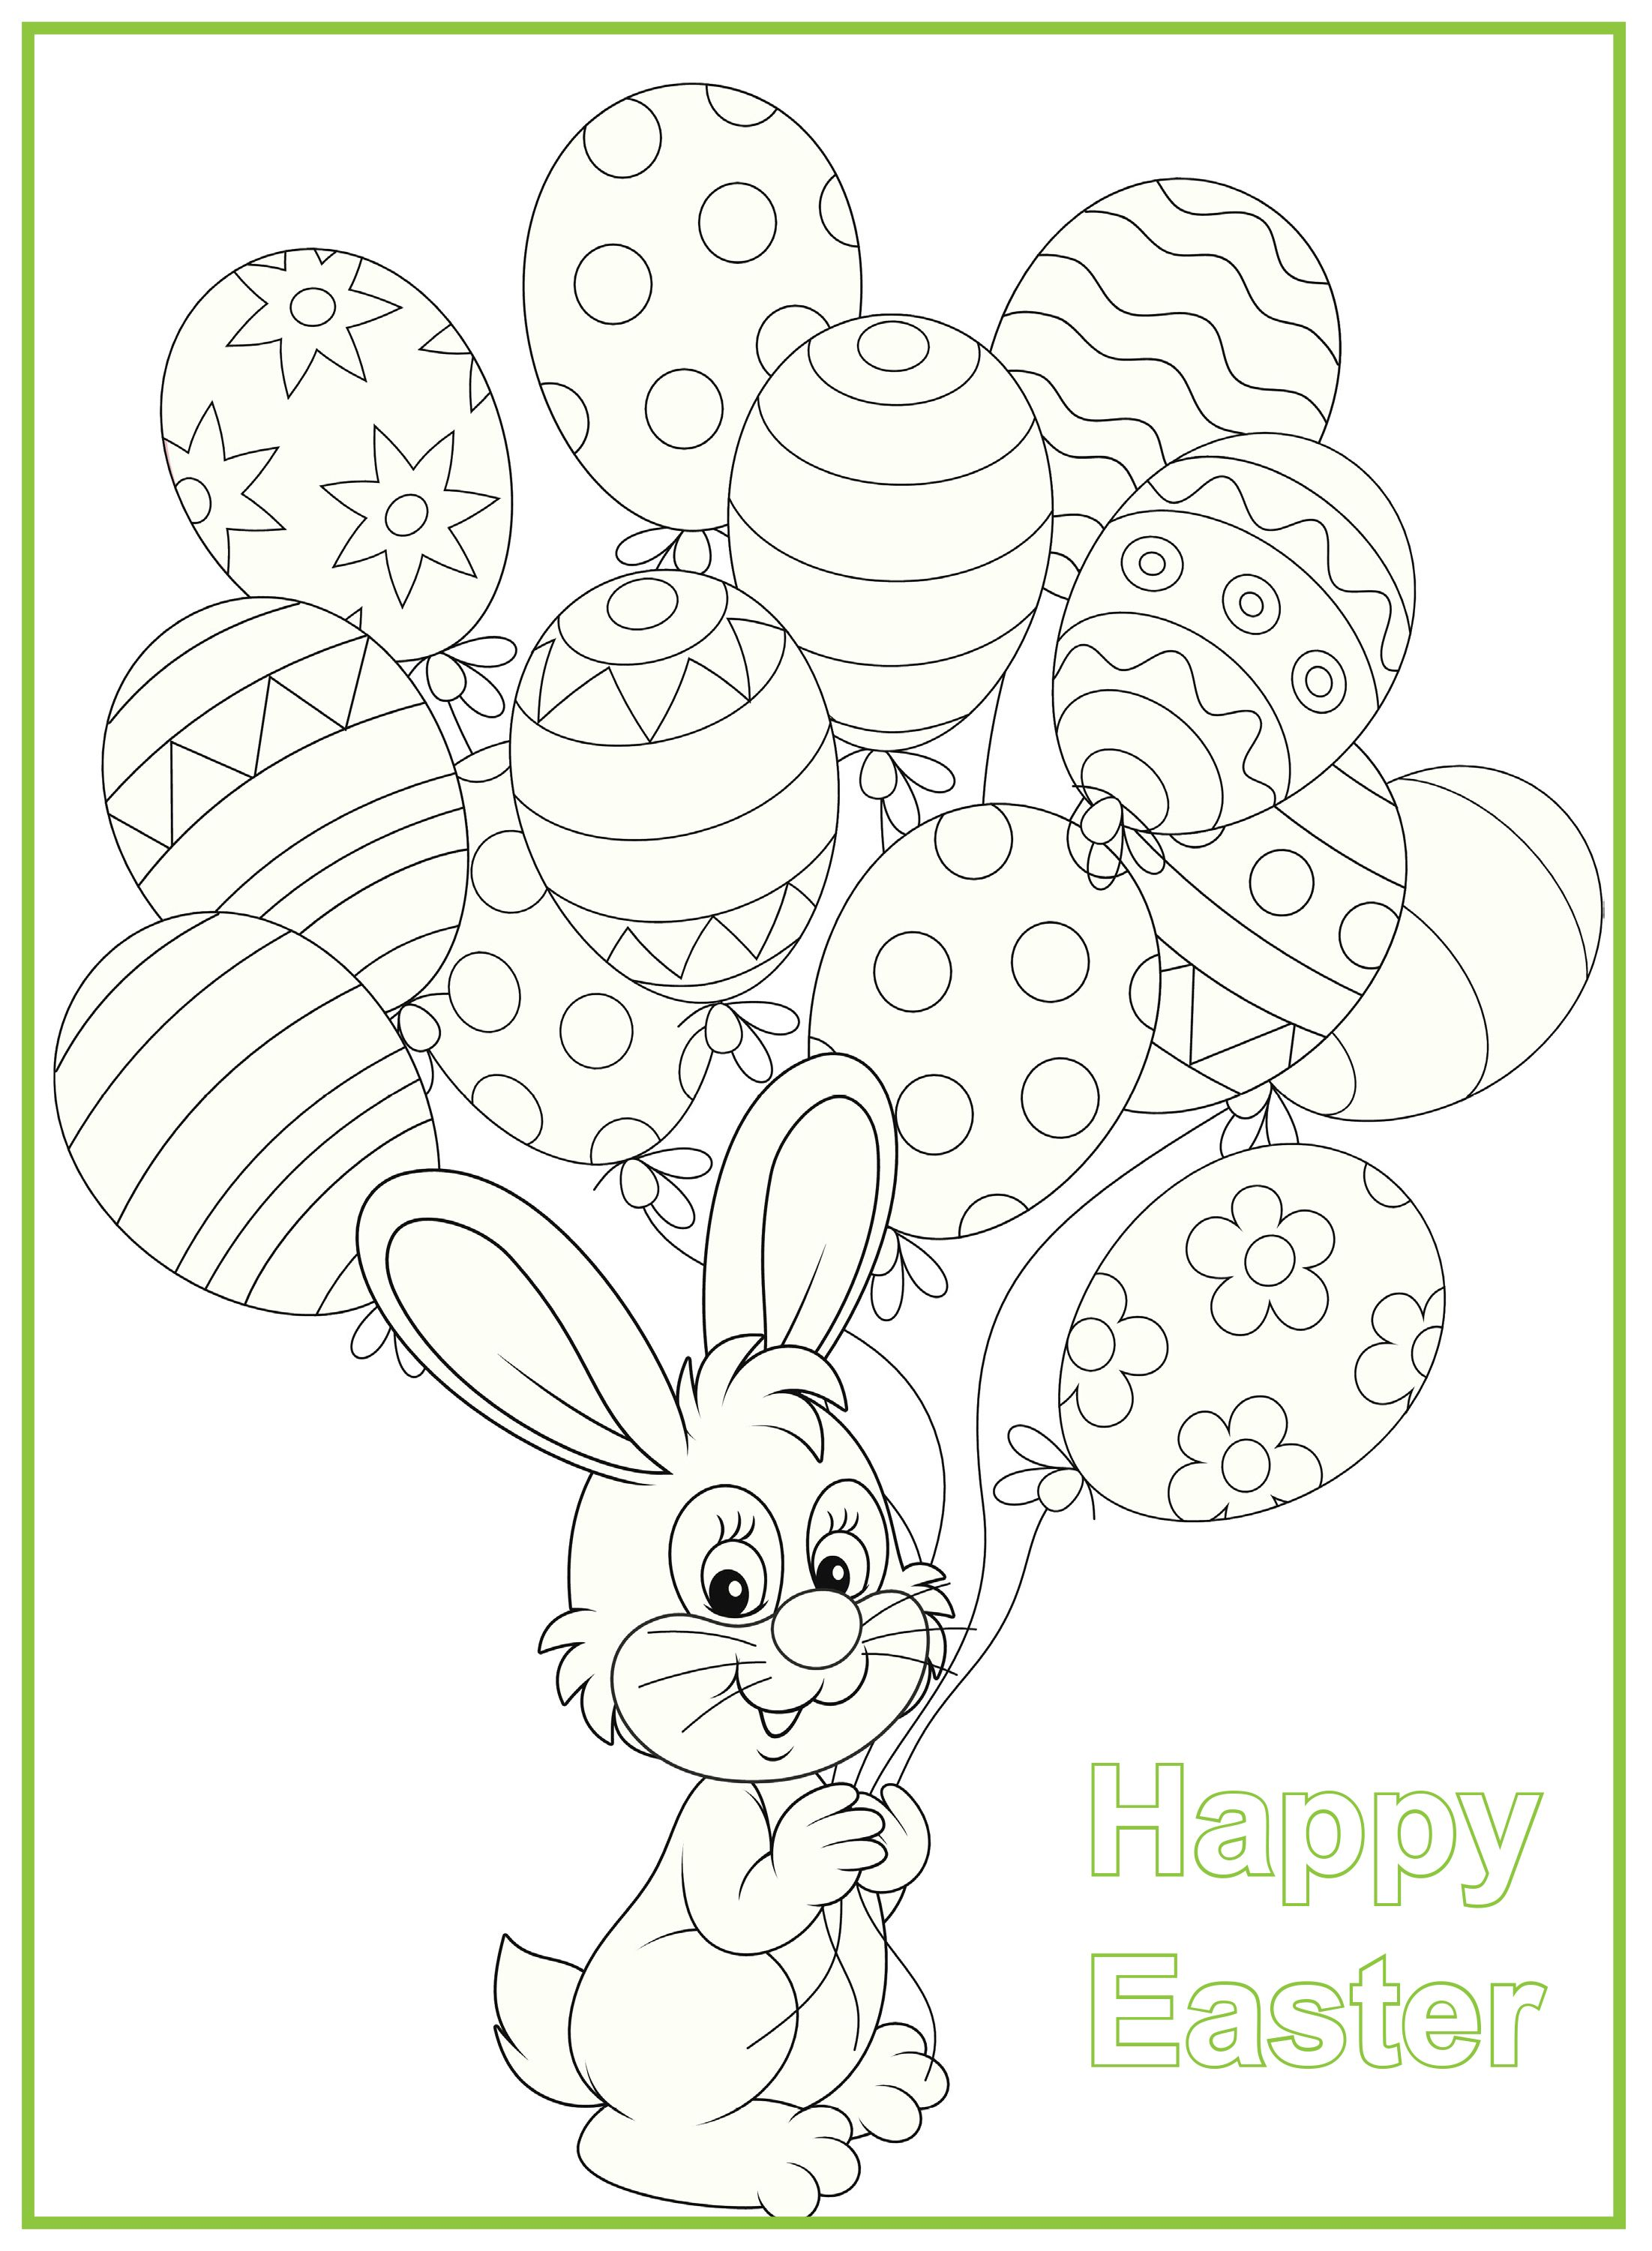 Print this cute Easter bunny for the kids to colour in ...